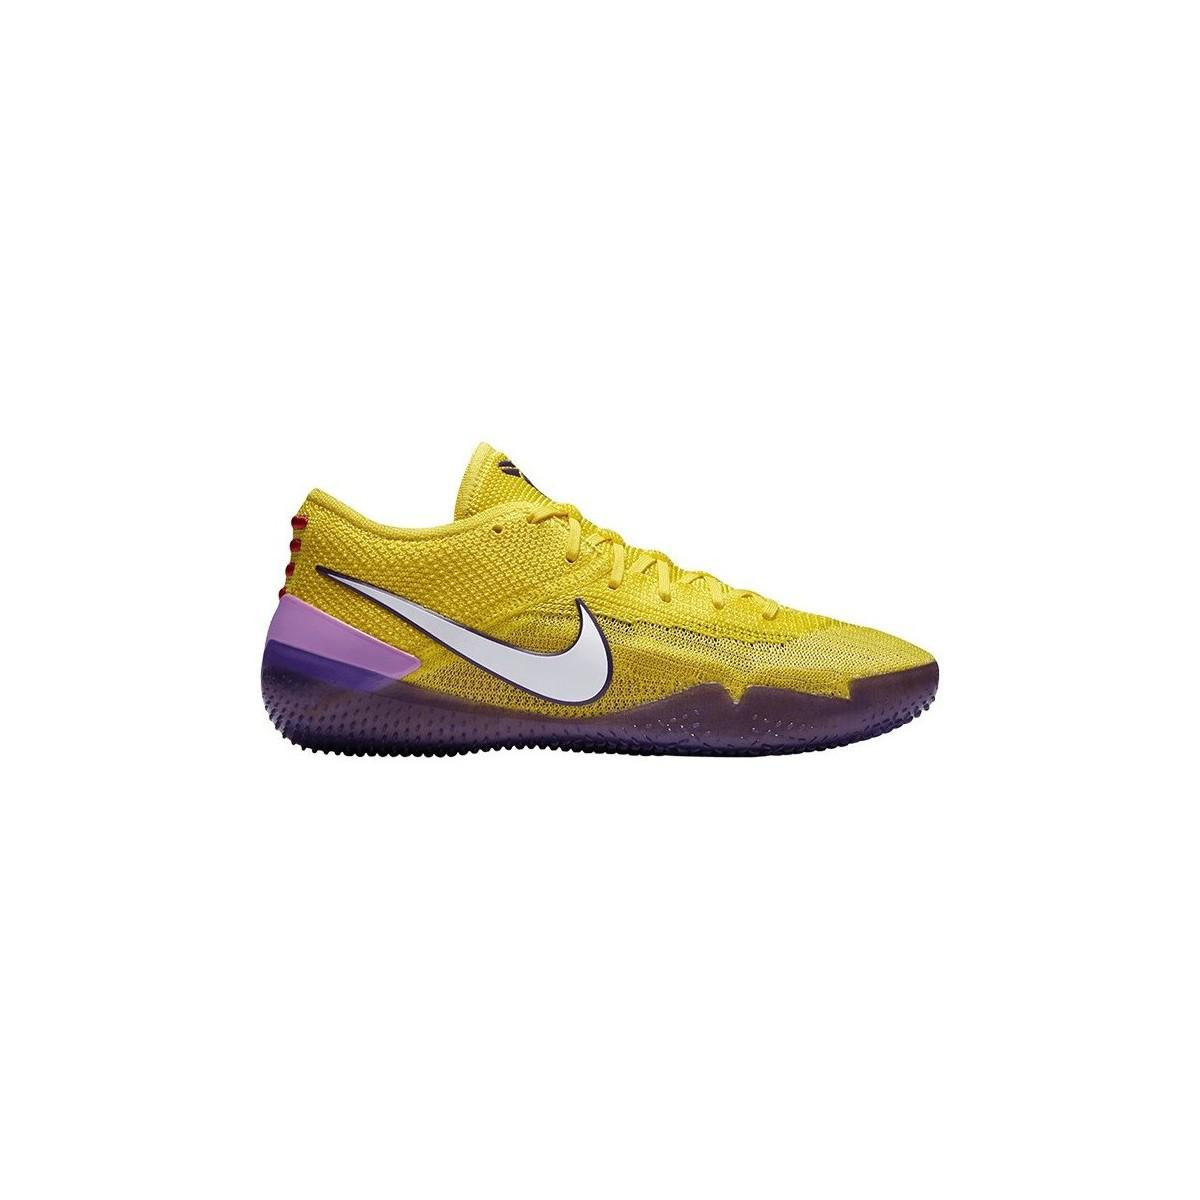 cheap for discount 48d33 1db4e Nike - Kobe Ad Nxt 360 Men s Shoes (trainers) In Yellow for Men -. View  fullscreen